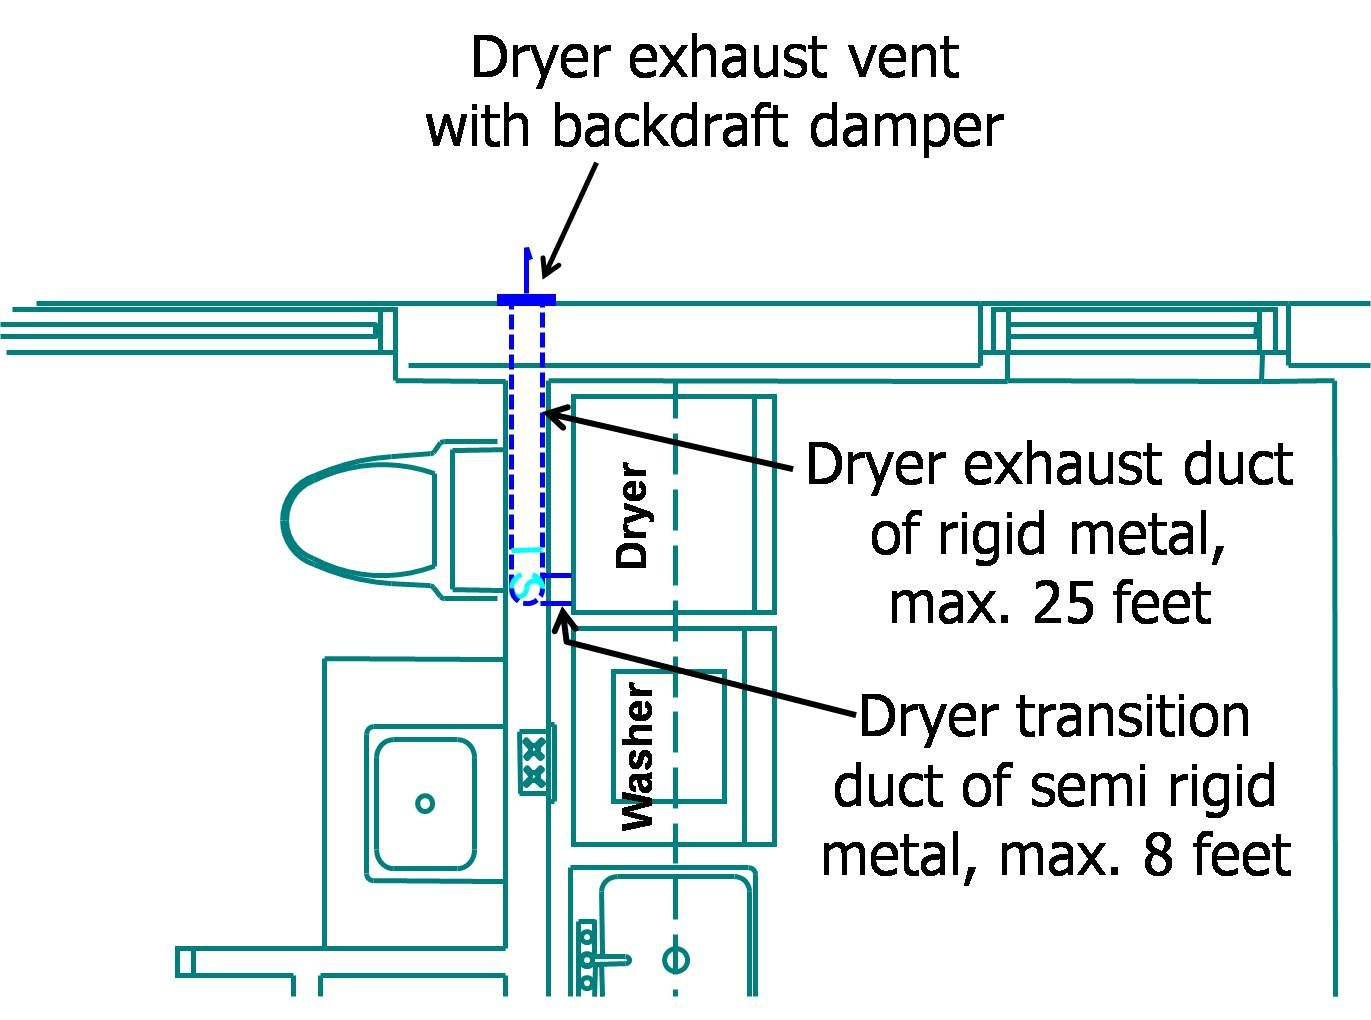 The dryer exhaust duct should vent directly to the exterior in a short, straight line, via a smooth, rigid metal duct